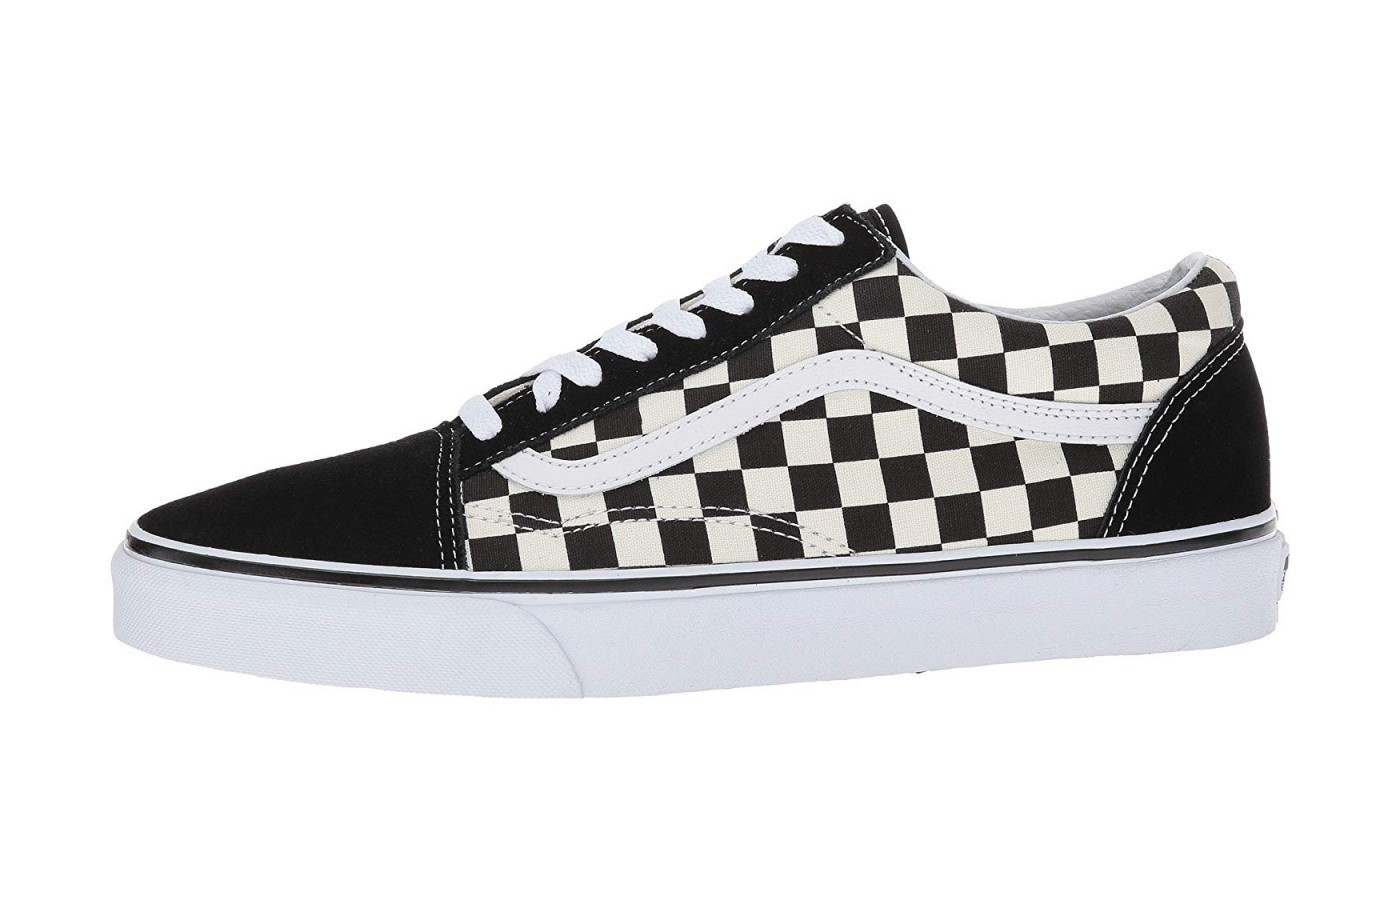 Vans Ward Low Side